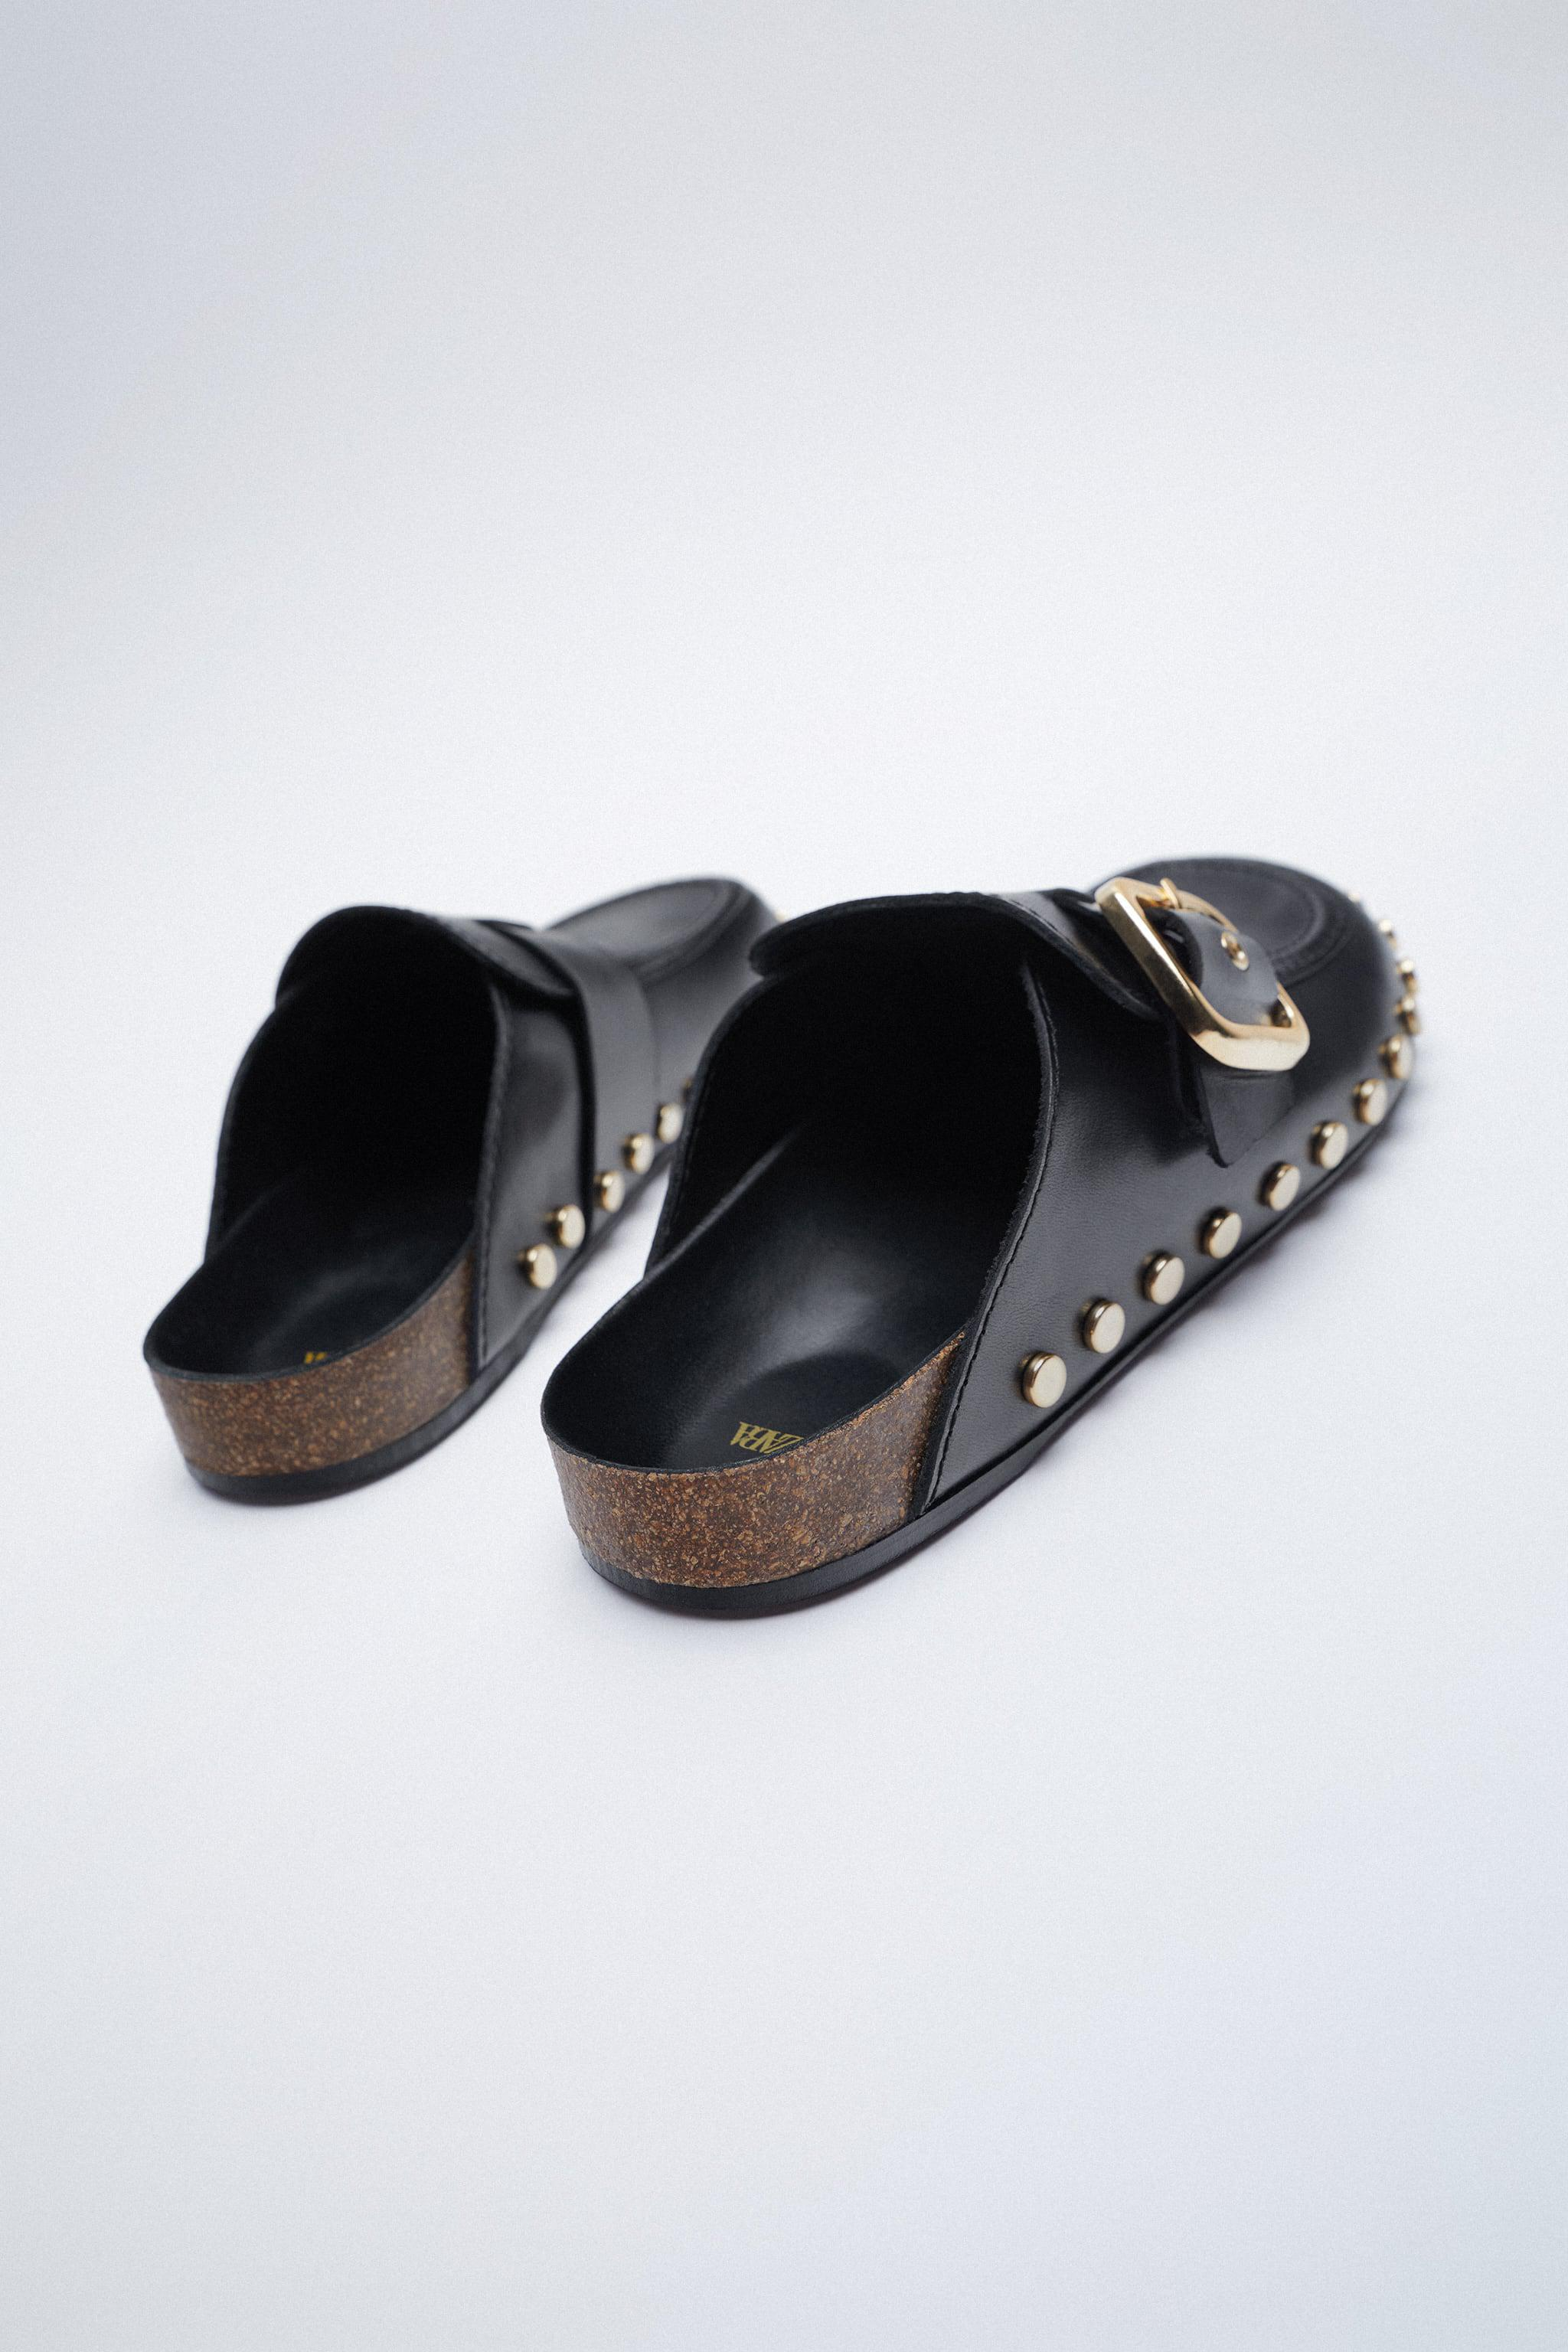 LOW HEEL LEATHER CLOGS WITH STUDS 5